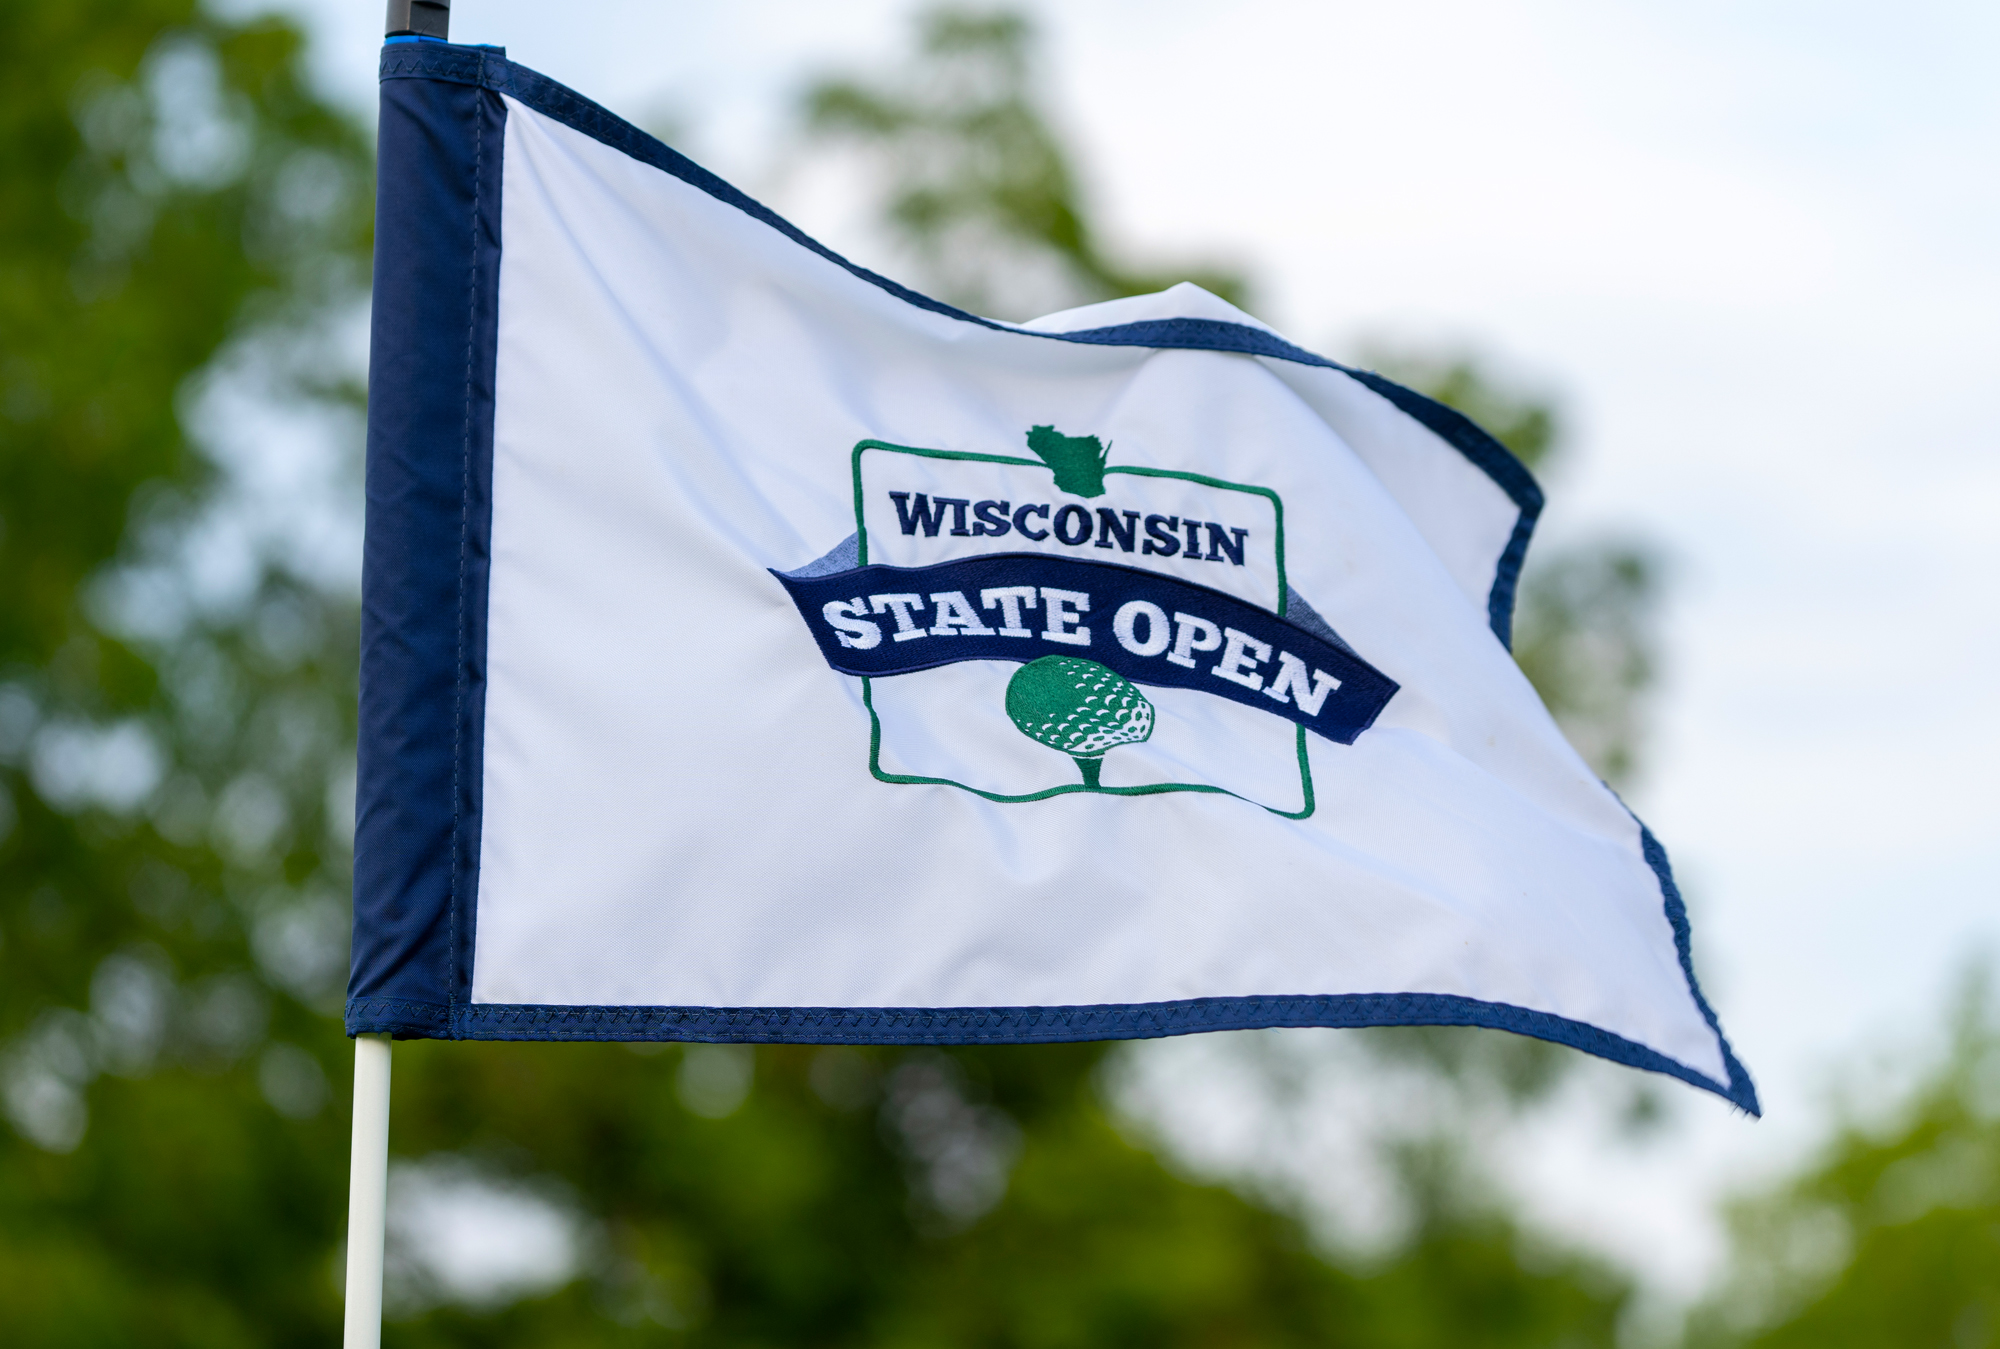 State Open flag